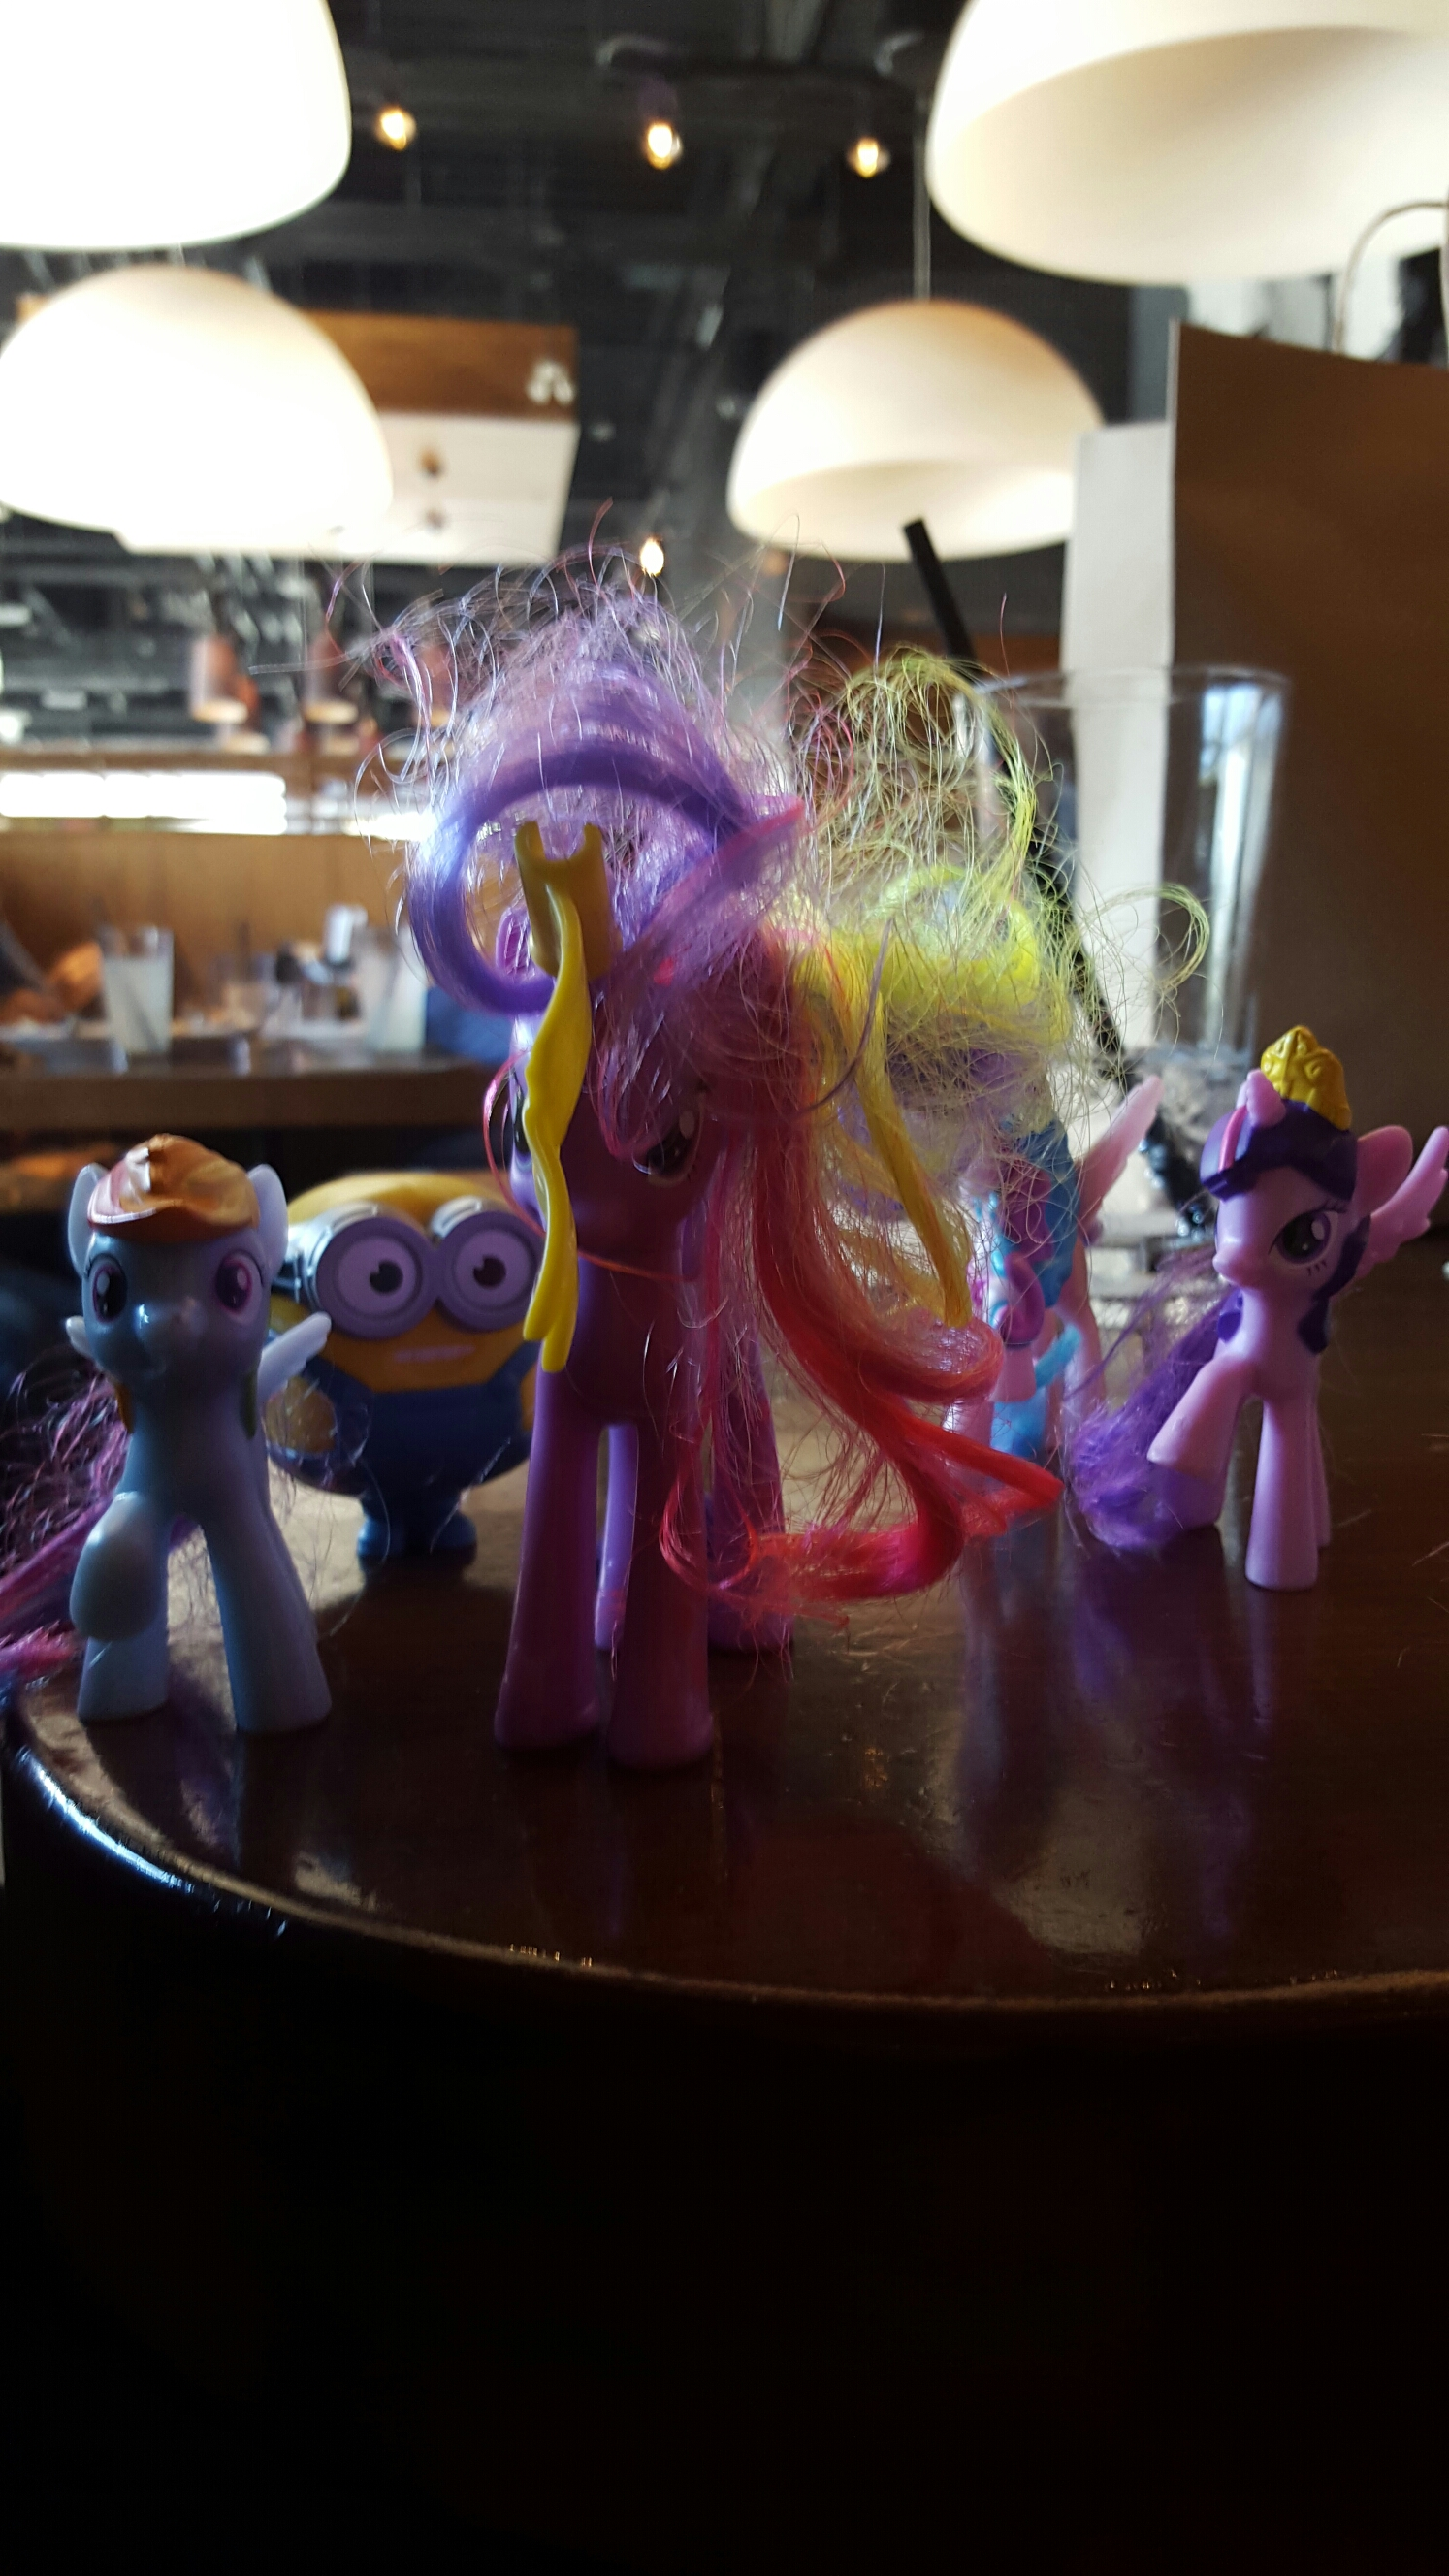 My god-daughter's collection of My Little Ponies, and a Minion.